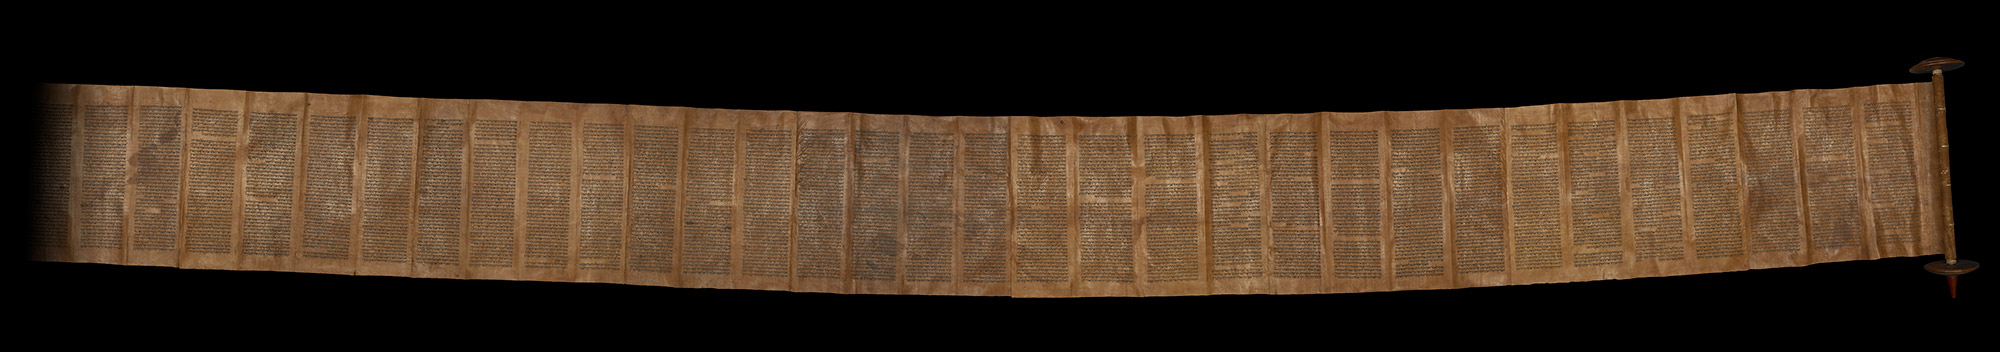 Unrolled Torah scroll